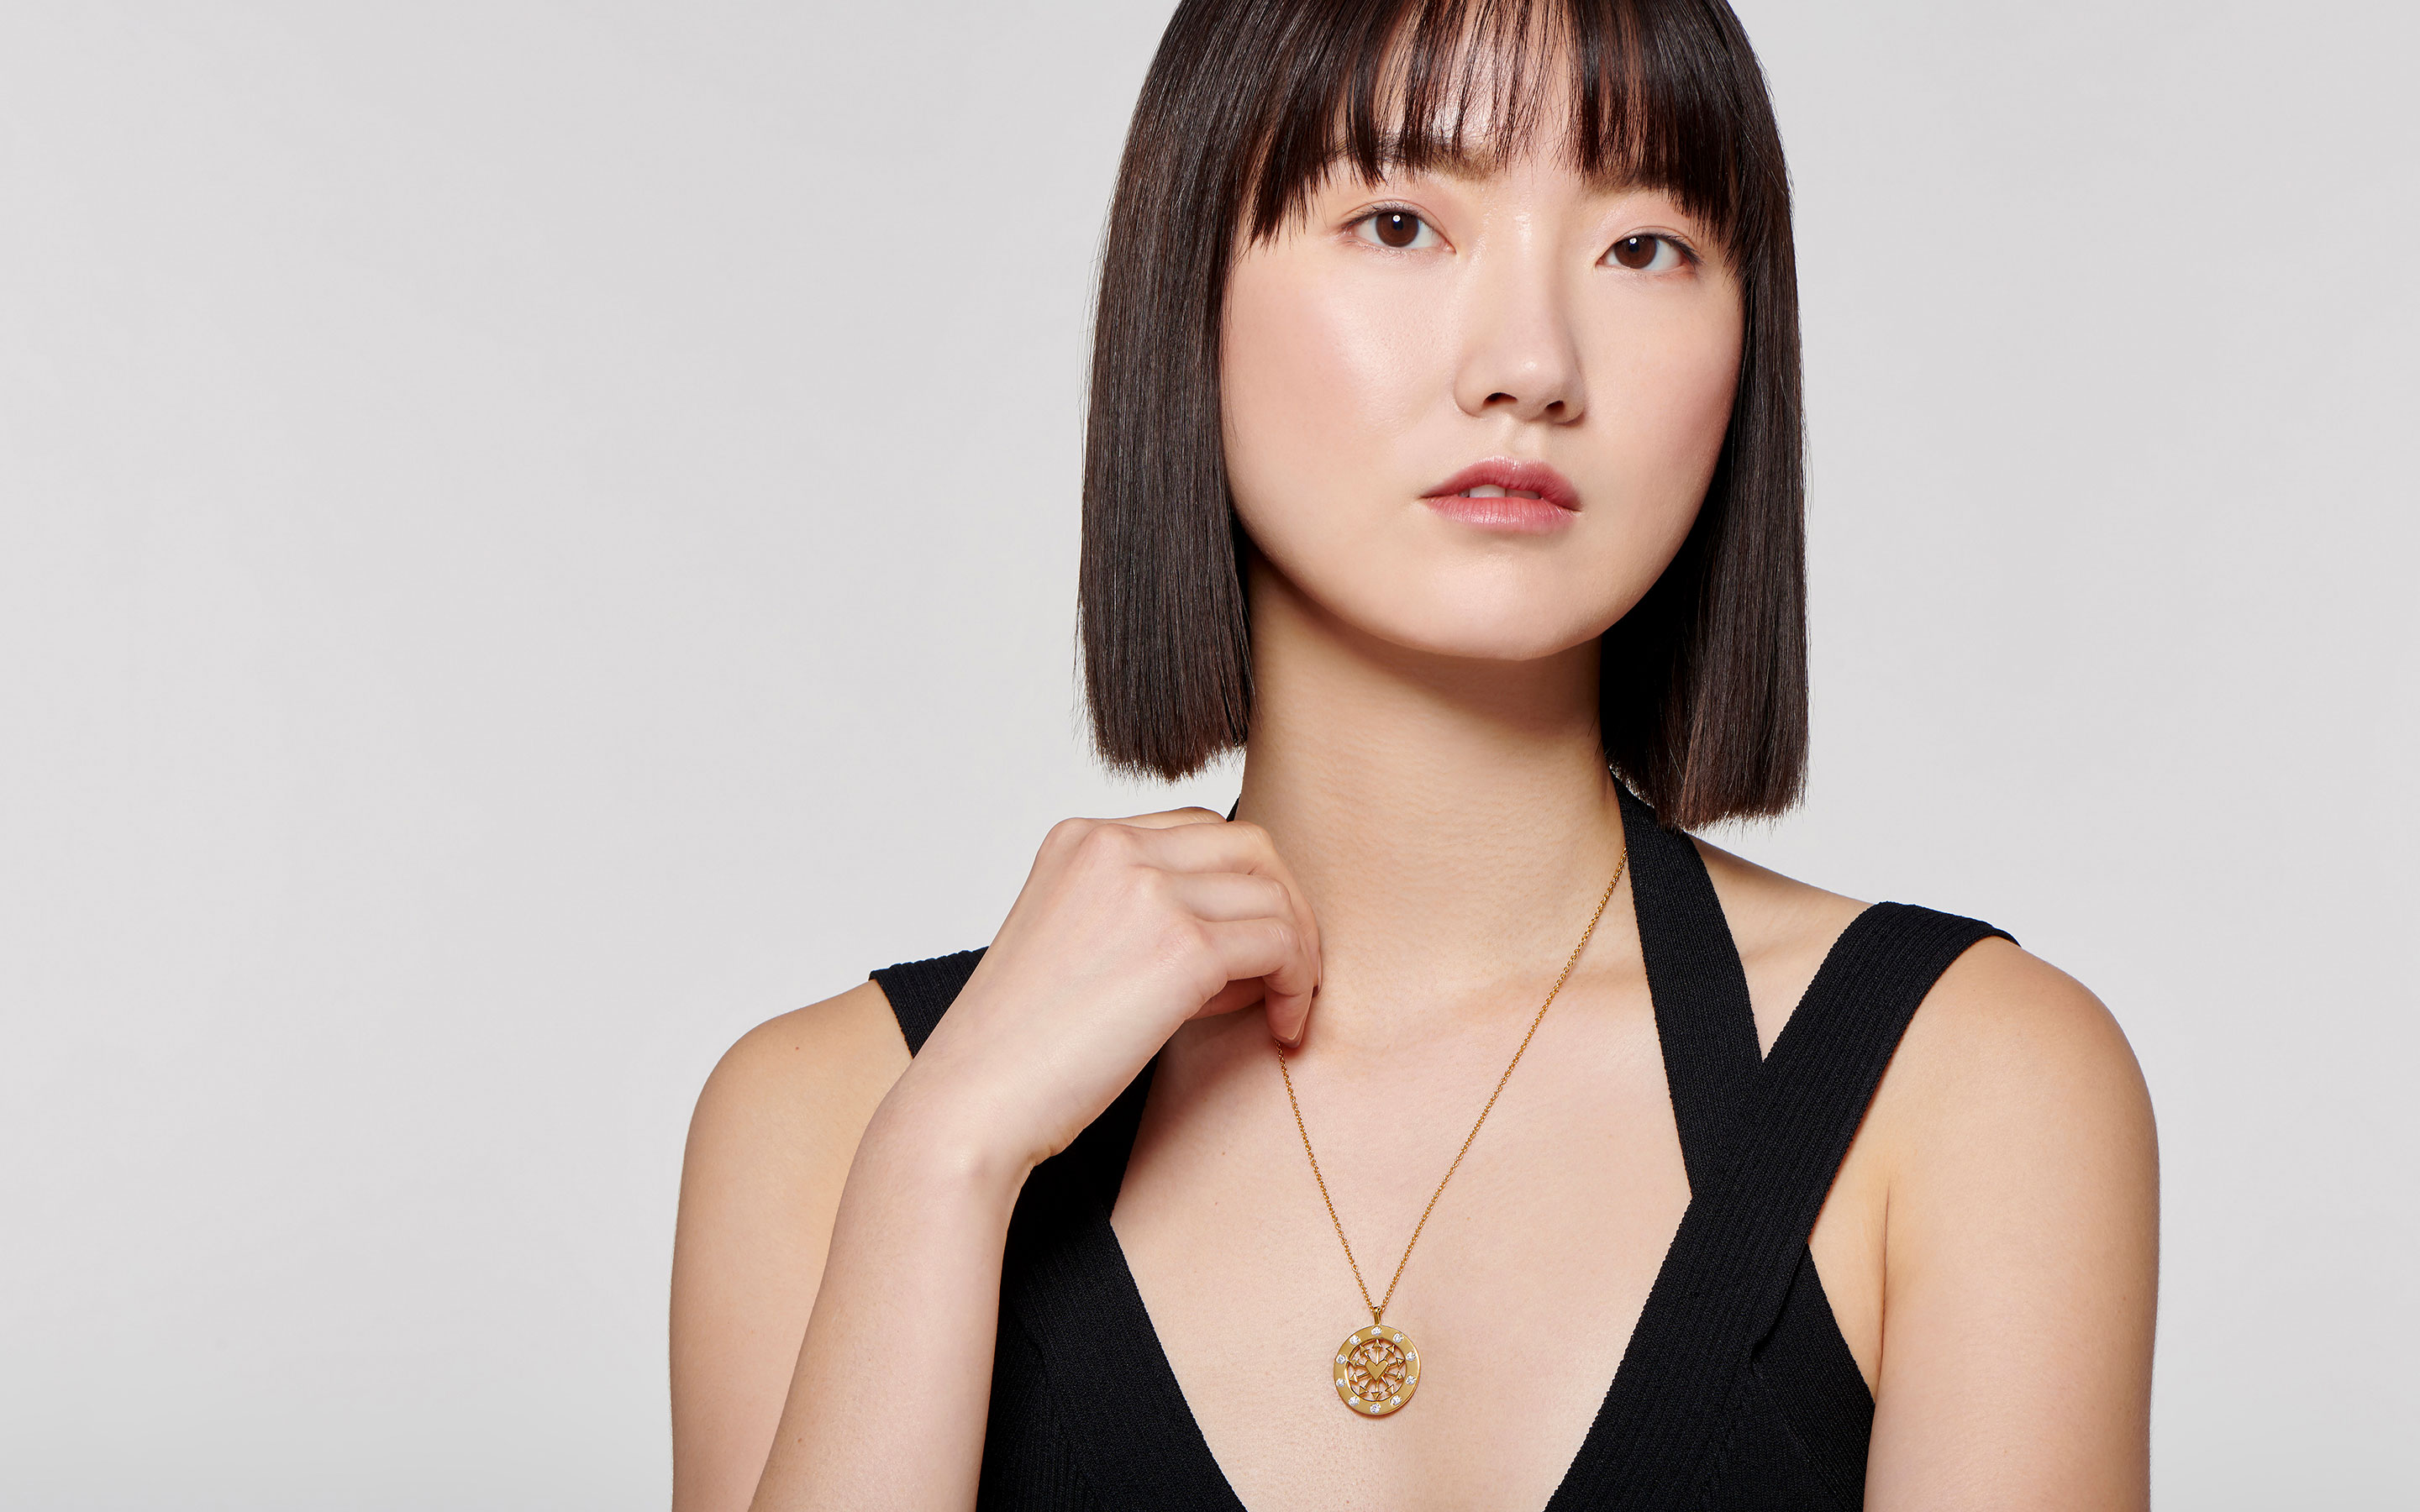 sultry East Asian woman showcasing stylish medallion necklace made of 22 karat polished gold with diamond accents